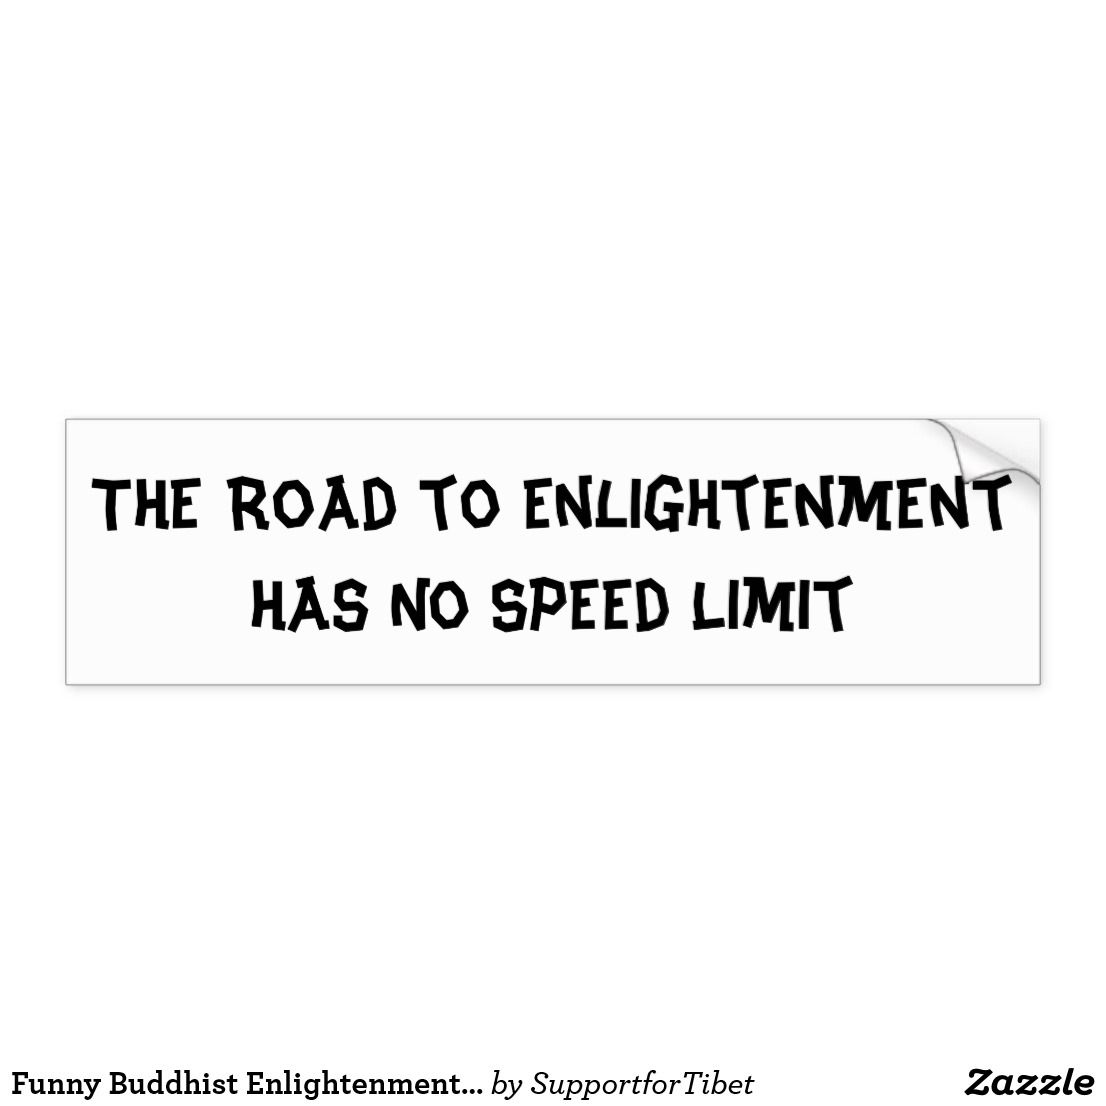 Funny buddhist enlightenment joke bumper sticker zazzle com